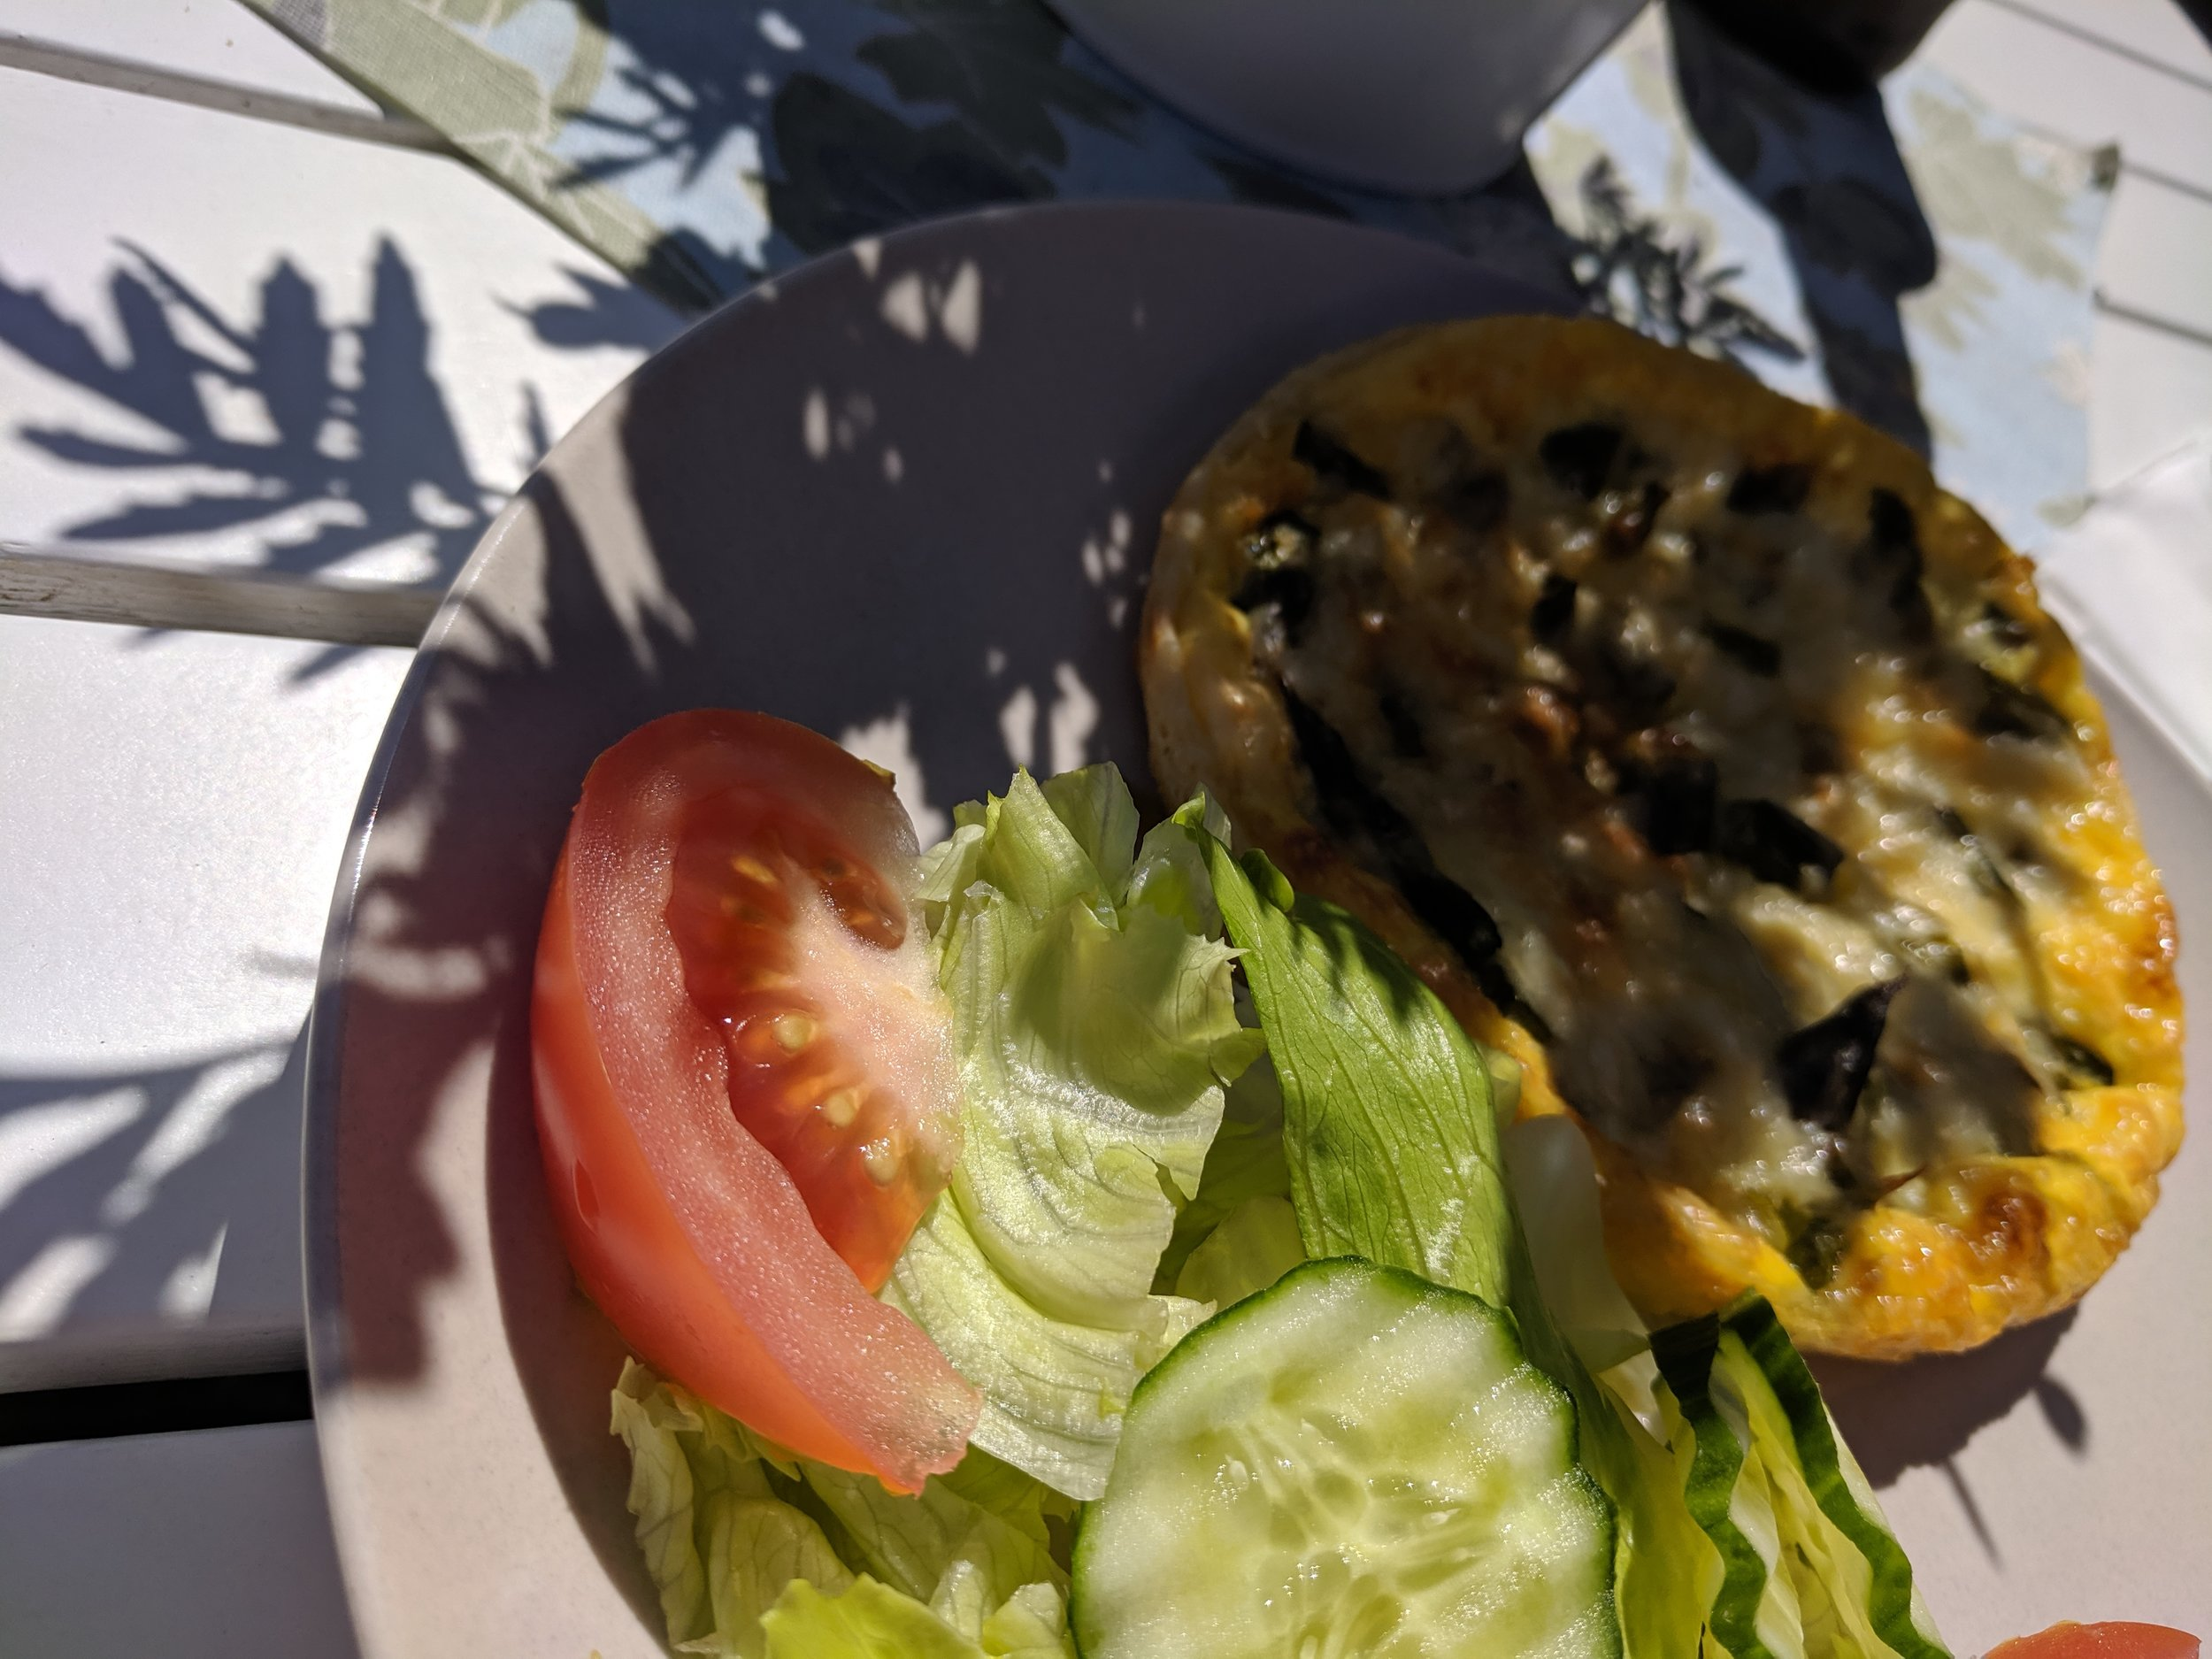 Homemade Mushroom Quiche and salad outside the town of Tofta on Gotland, Sweden.